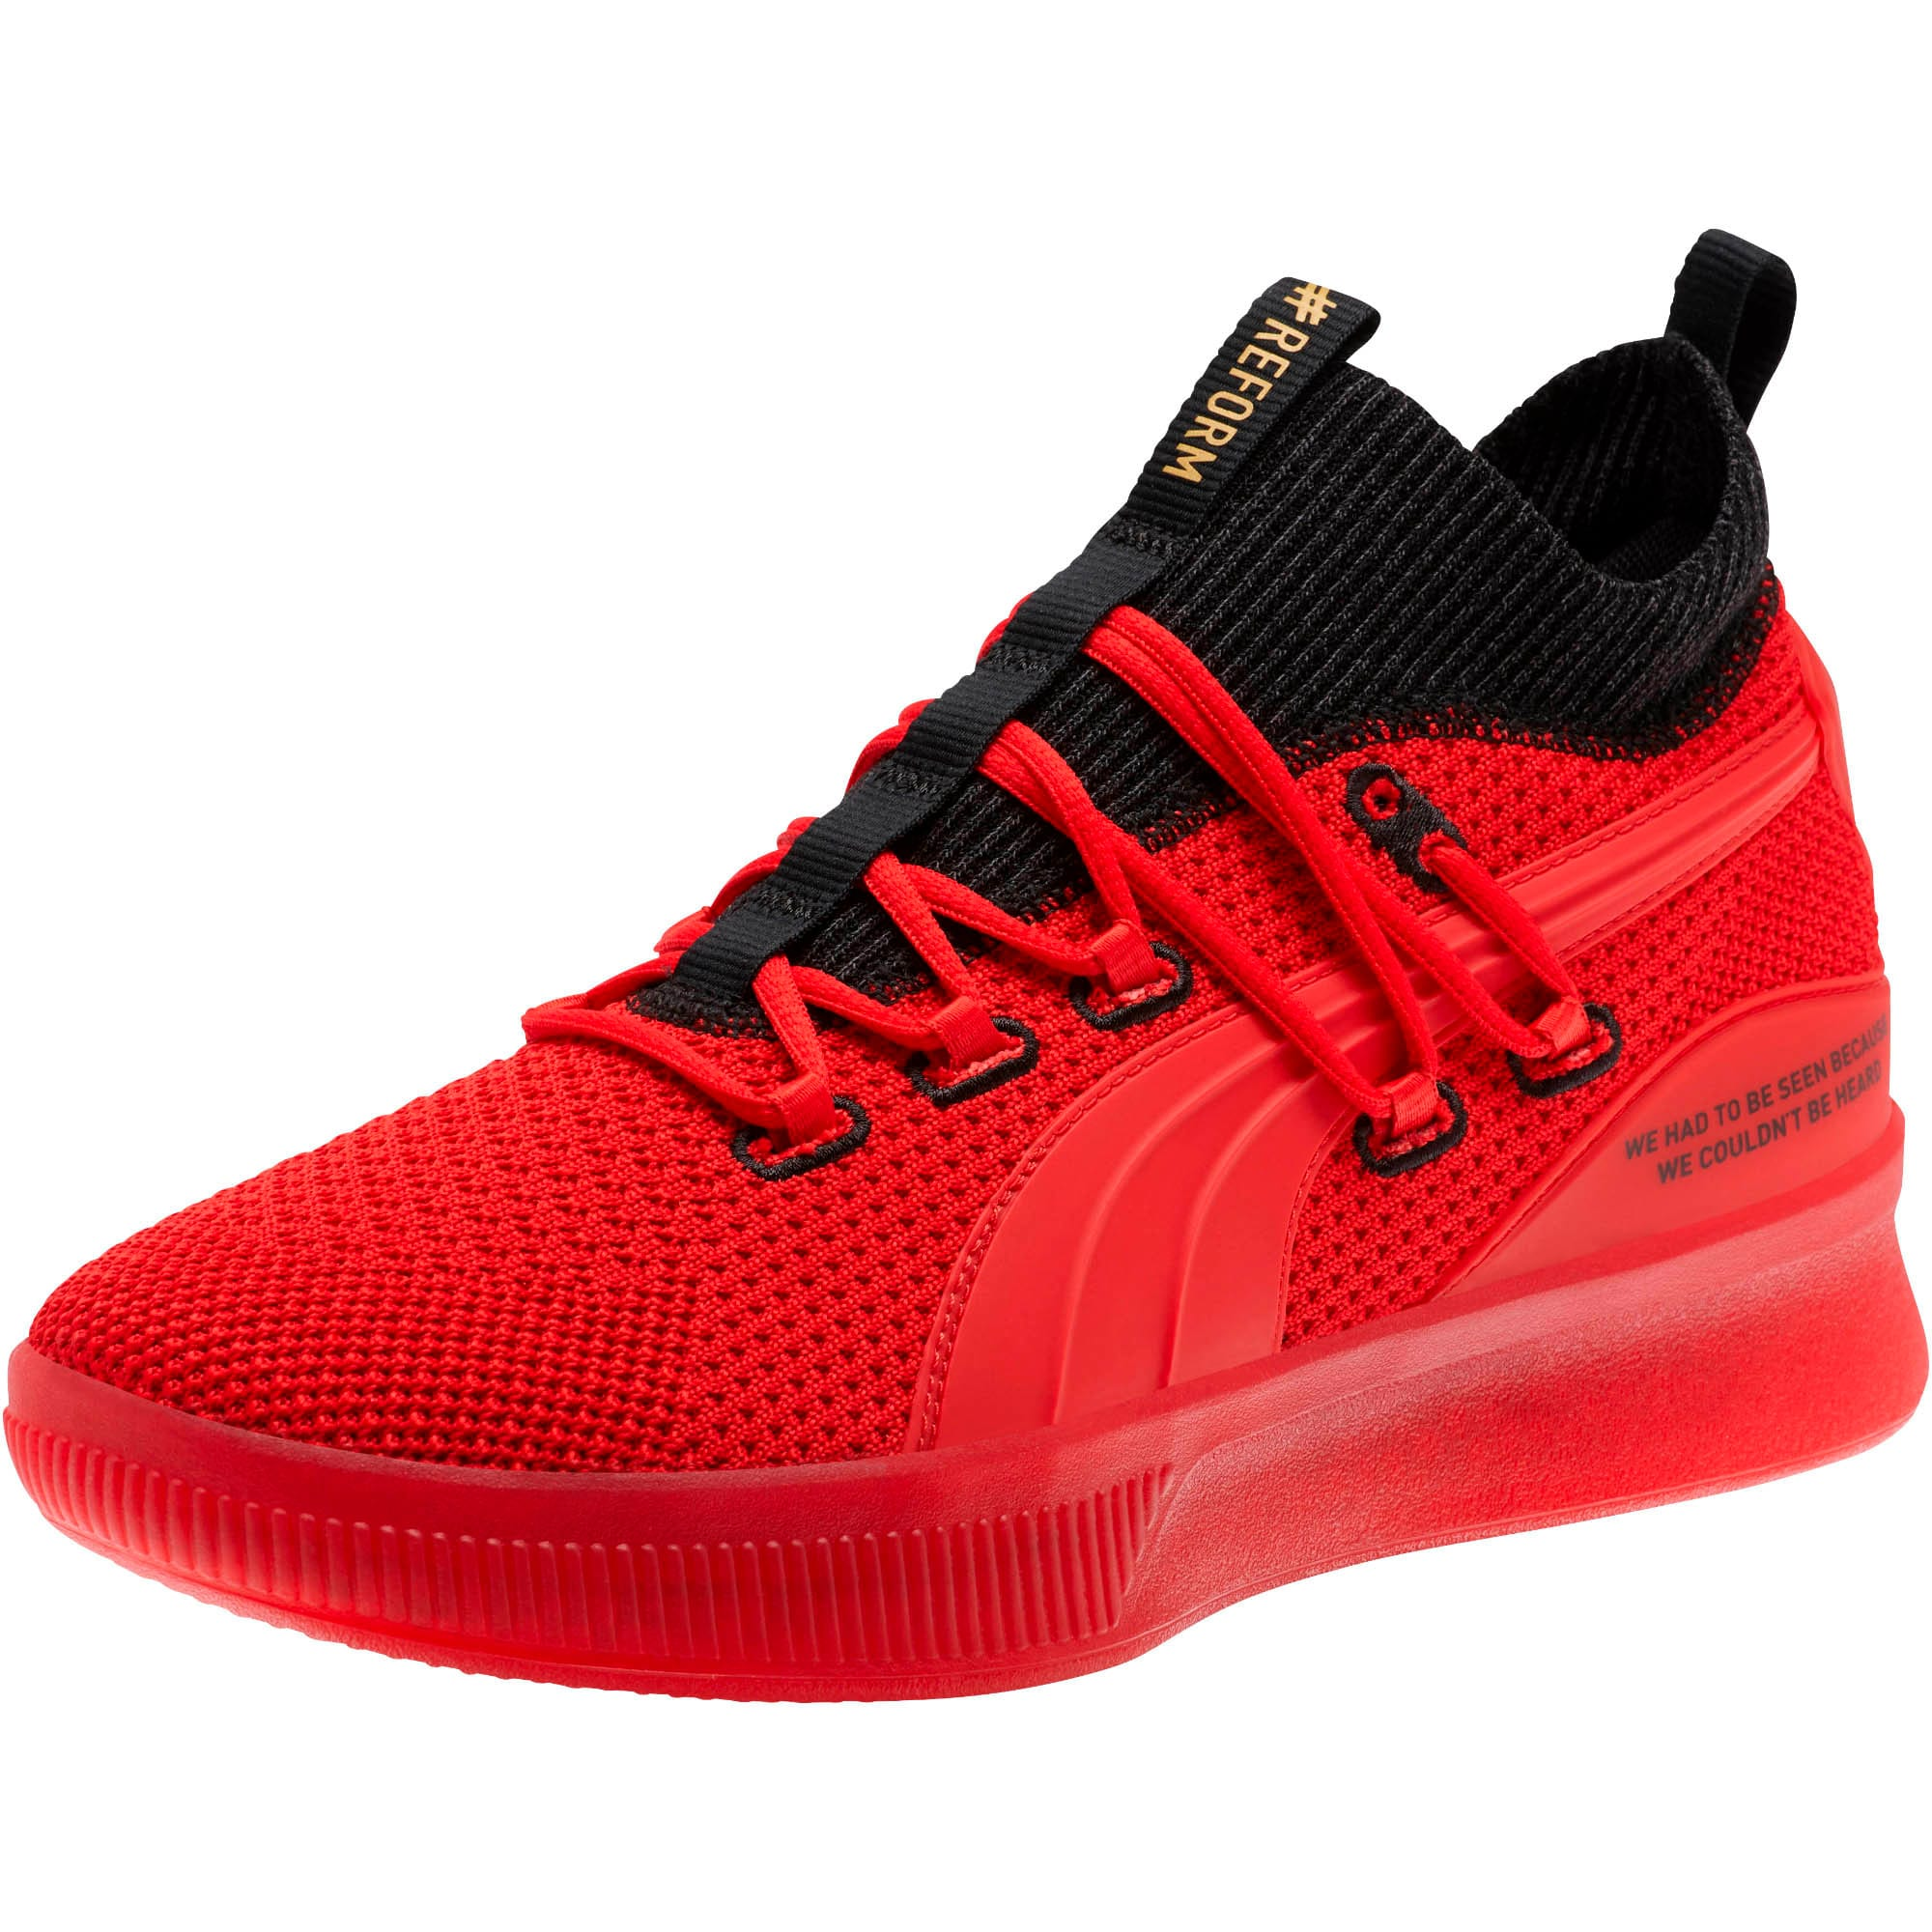 Thumbnail 1 of Clyde Court #REFORM Basketball Shoes, High Risk Red, medium